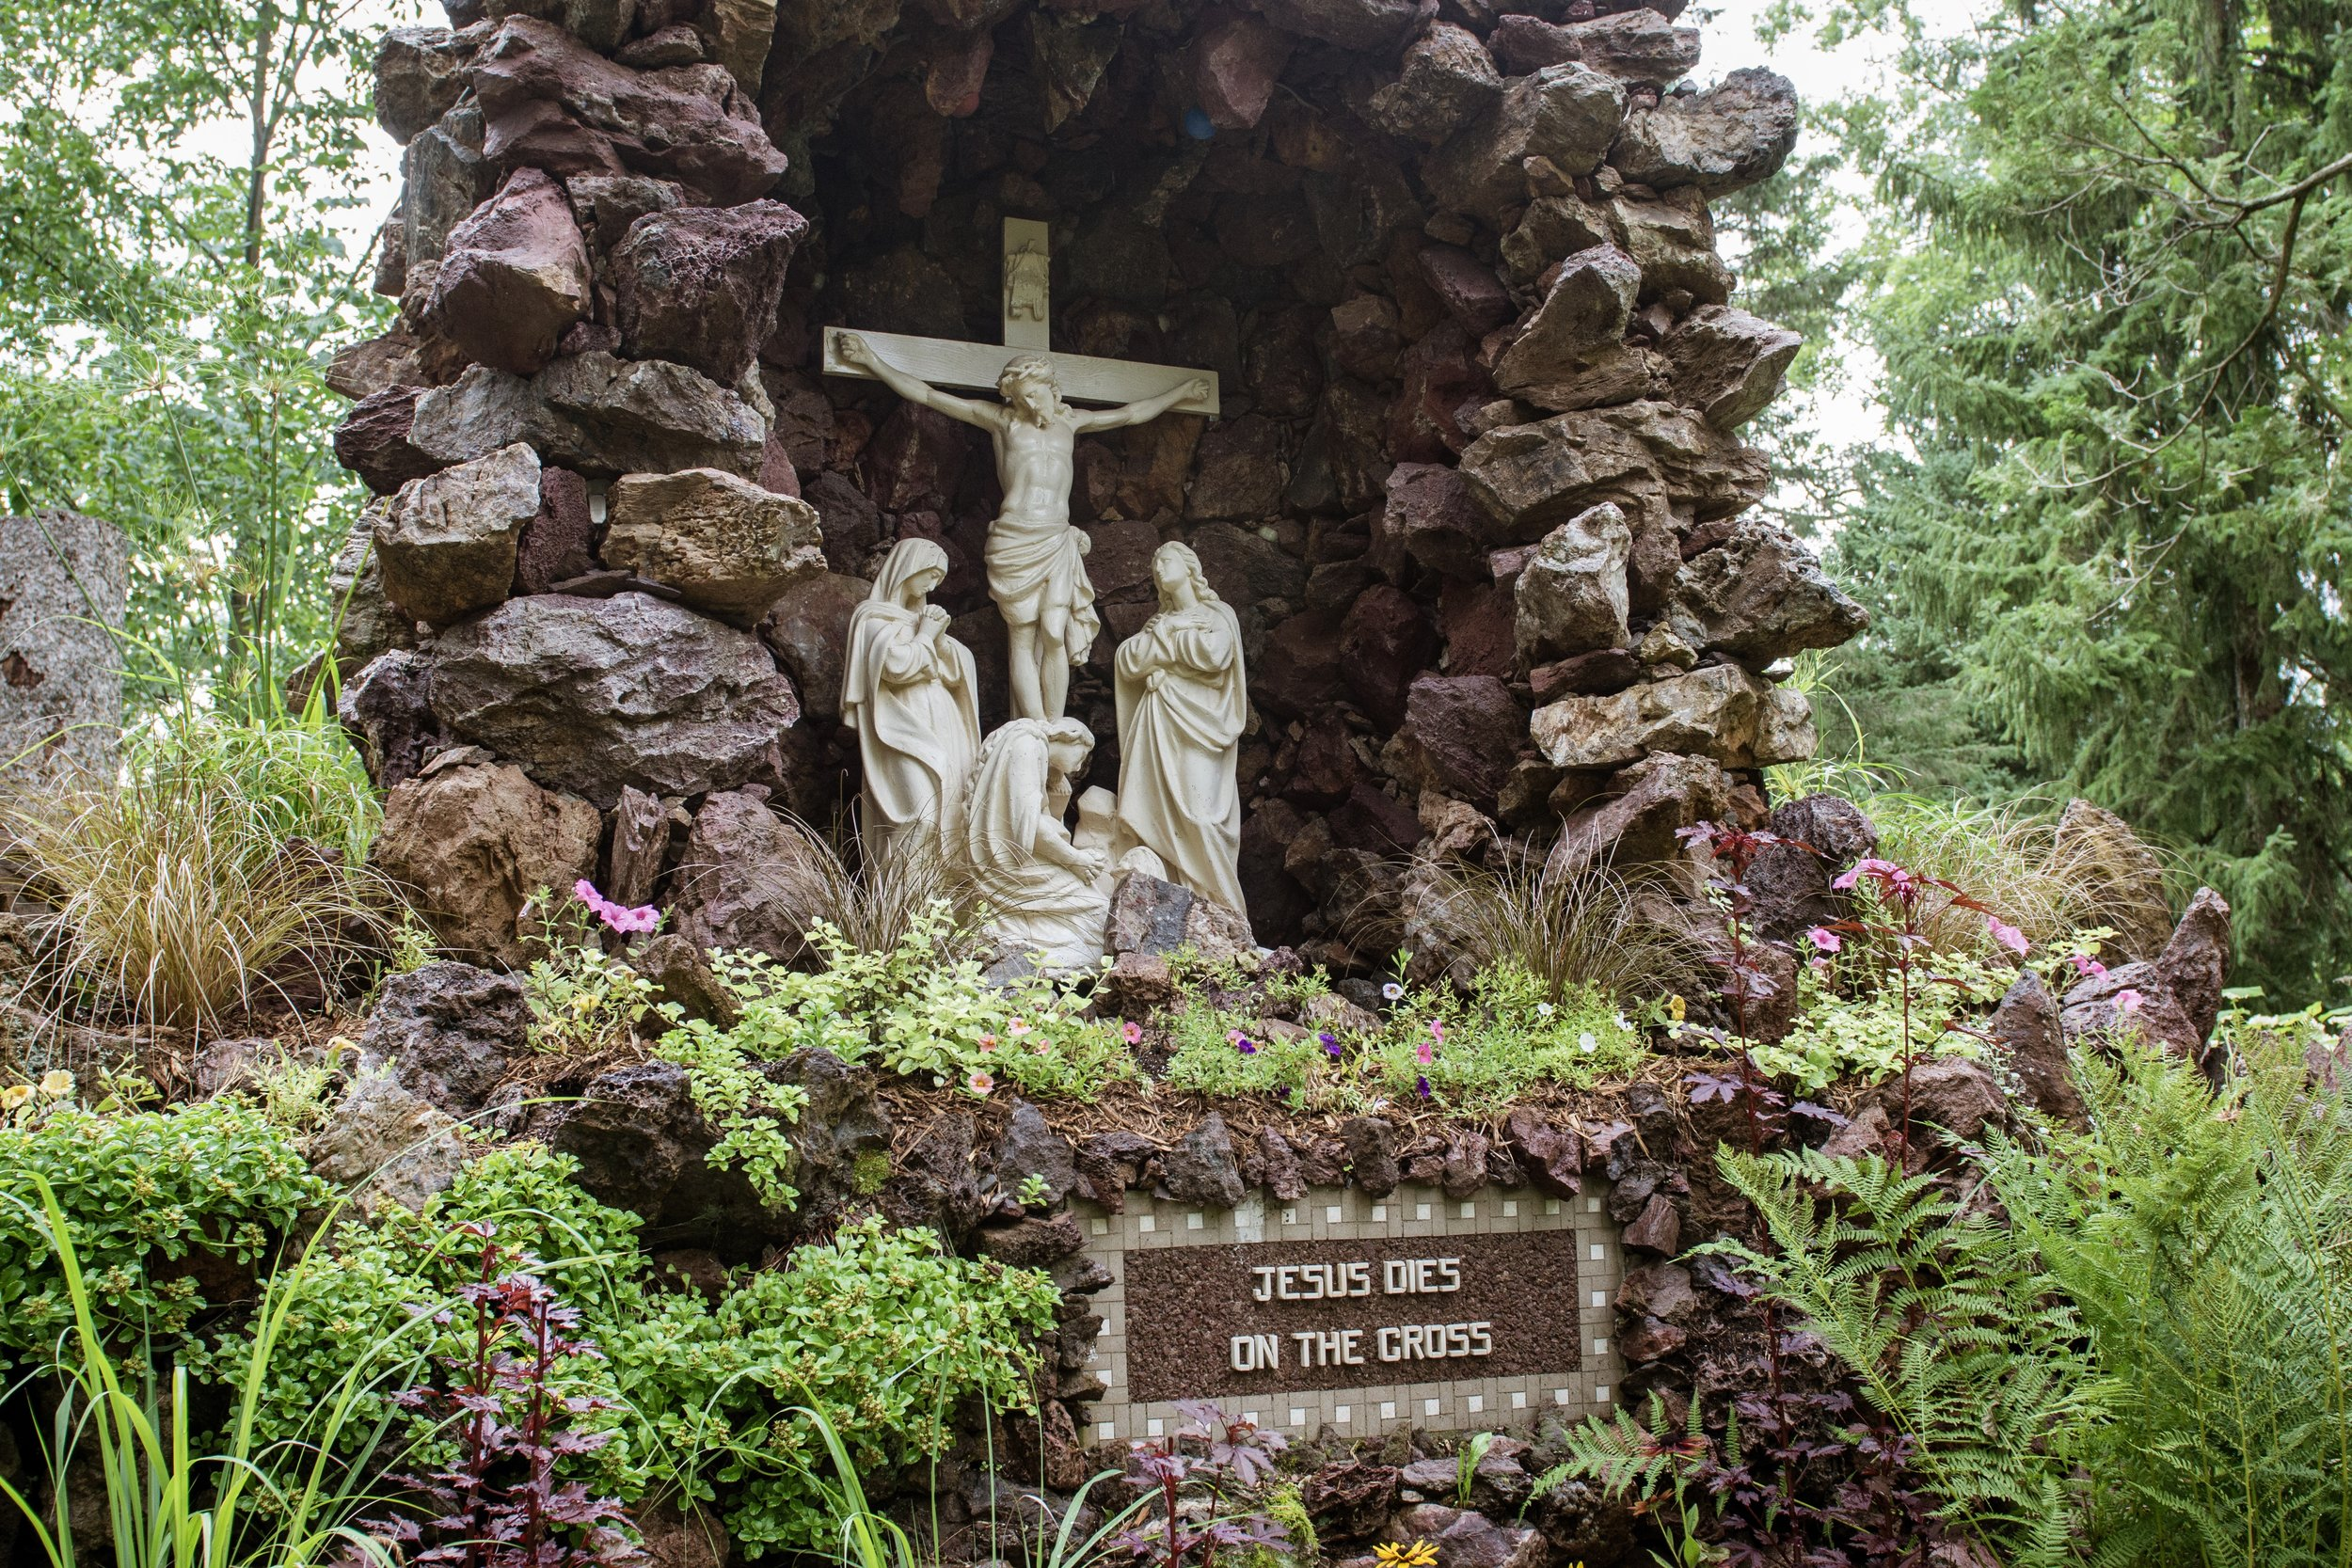 There are dozens of shrines spread throughout the 5 acre gardens. This is one of the 14 stations of Christ.